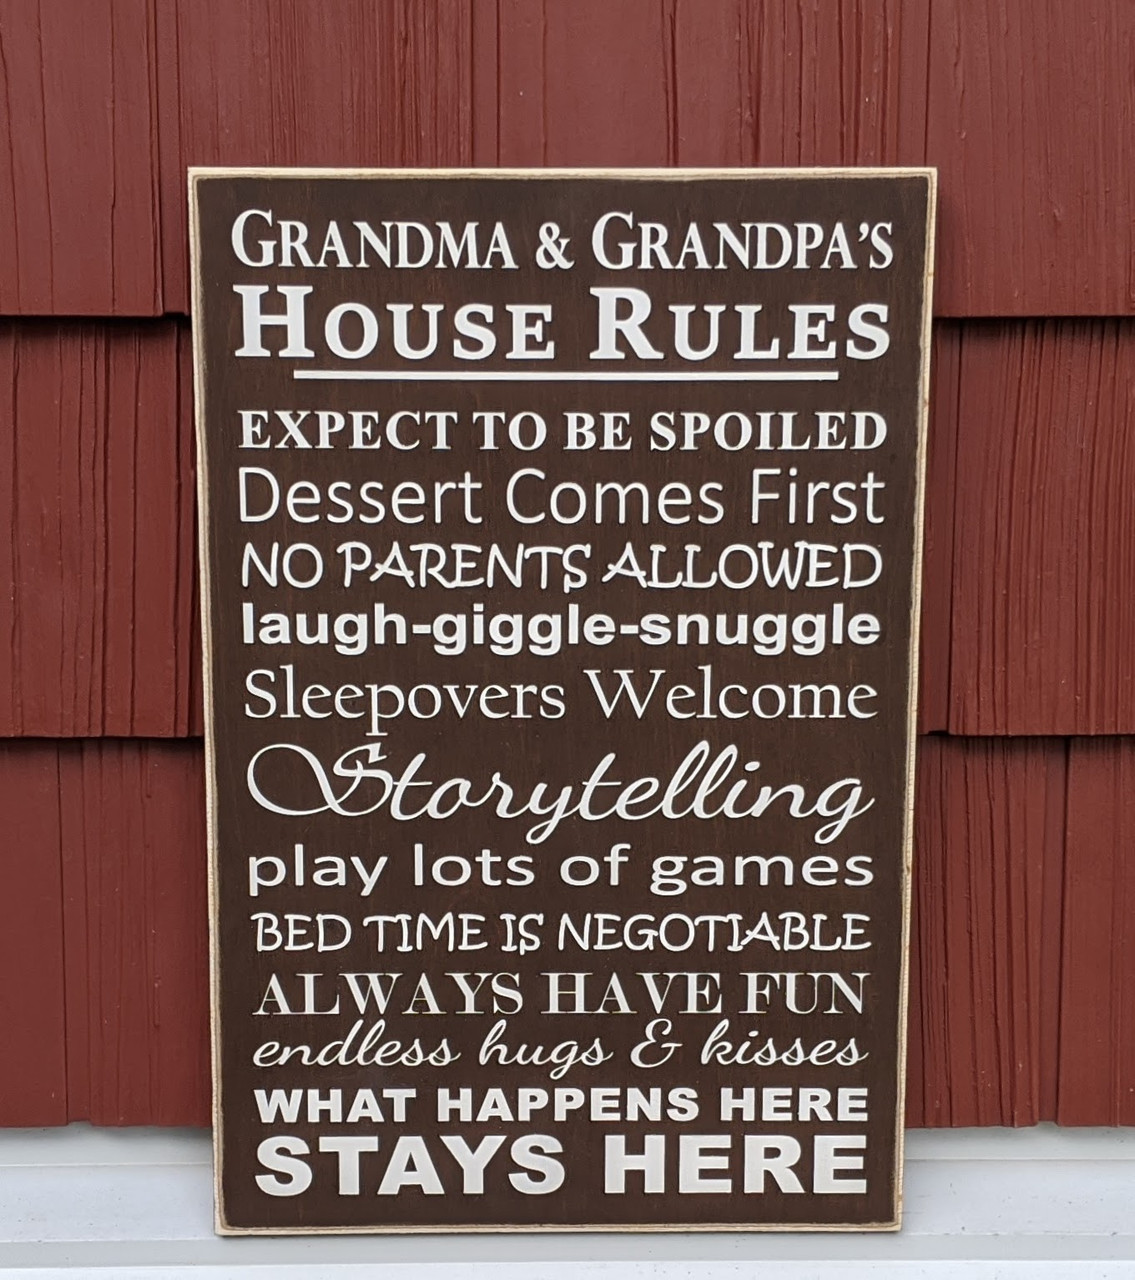 House Rules Sign for Grandma and Grandpa